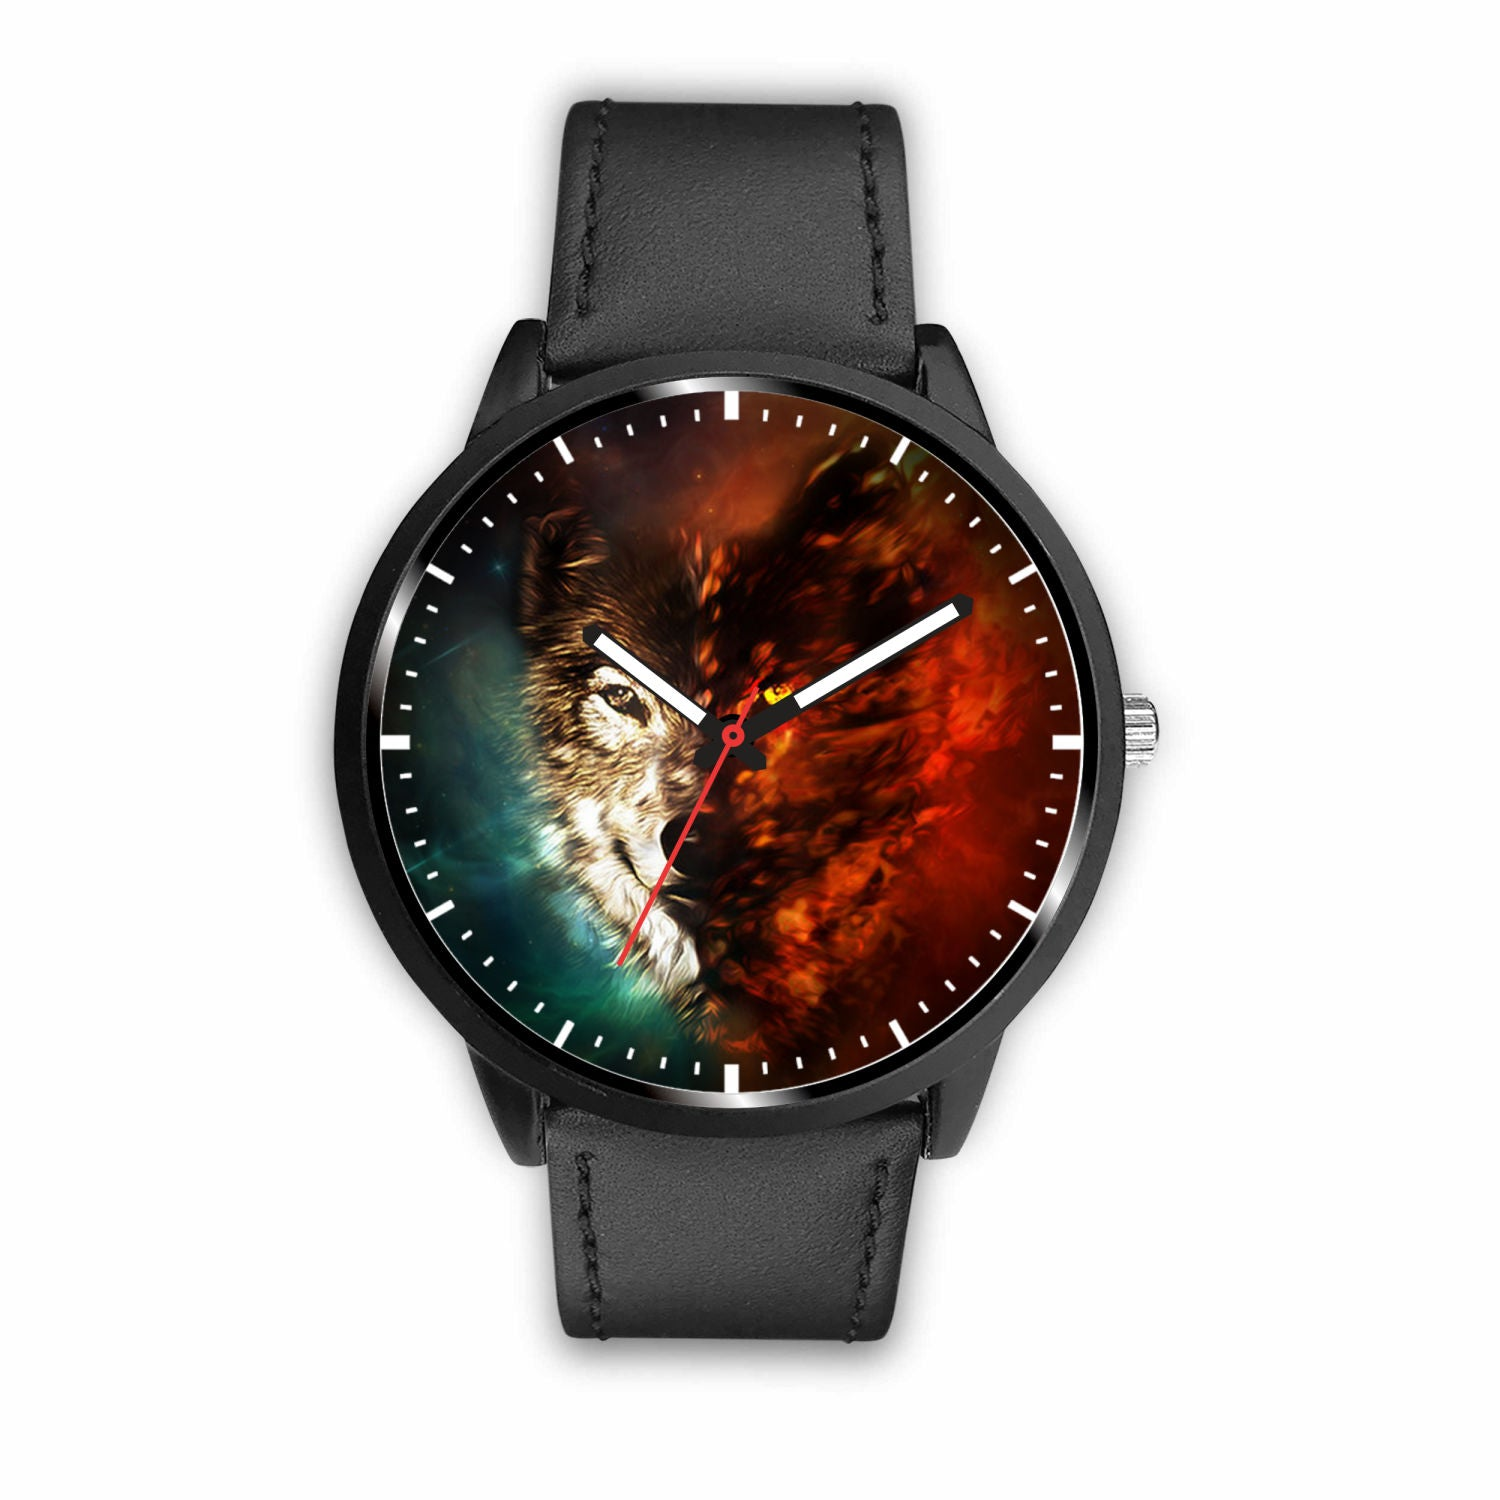 3D Ice and Fire Wolf Watch - Stainless steel back with leather/ stainless steel band 003